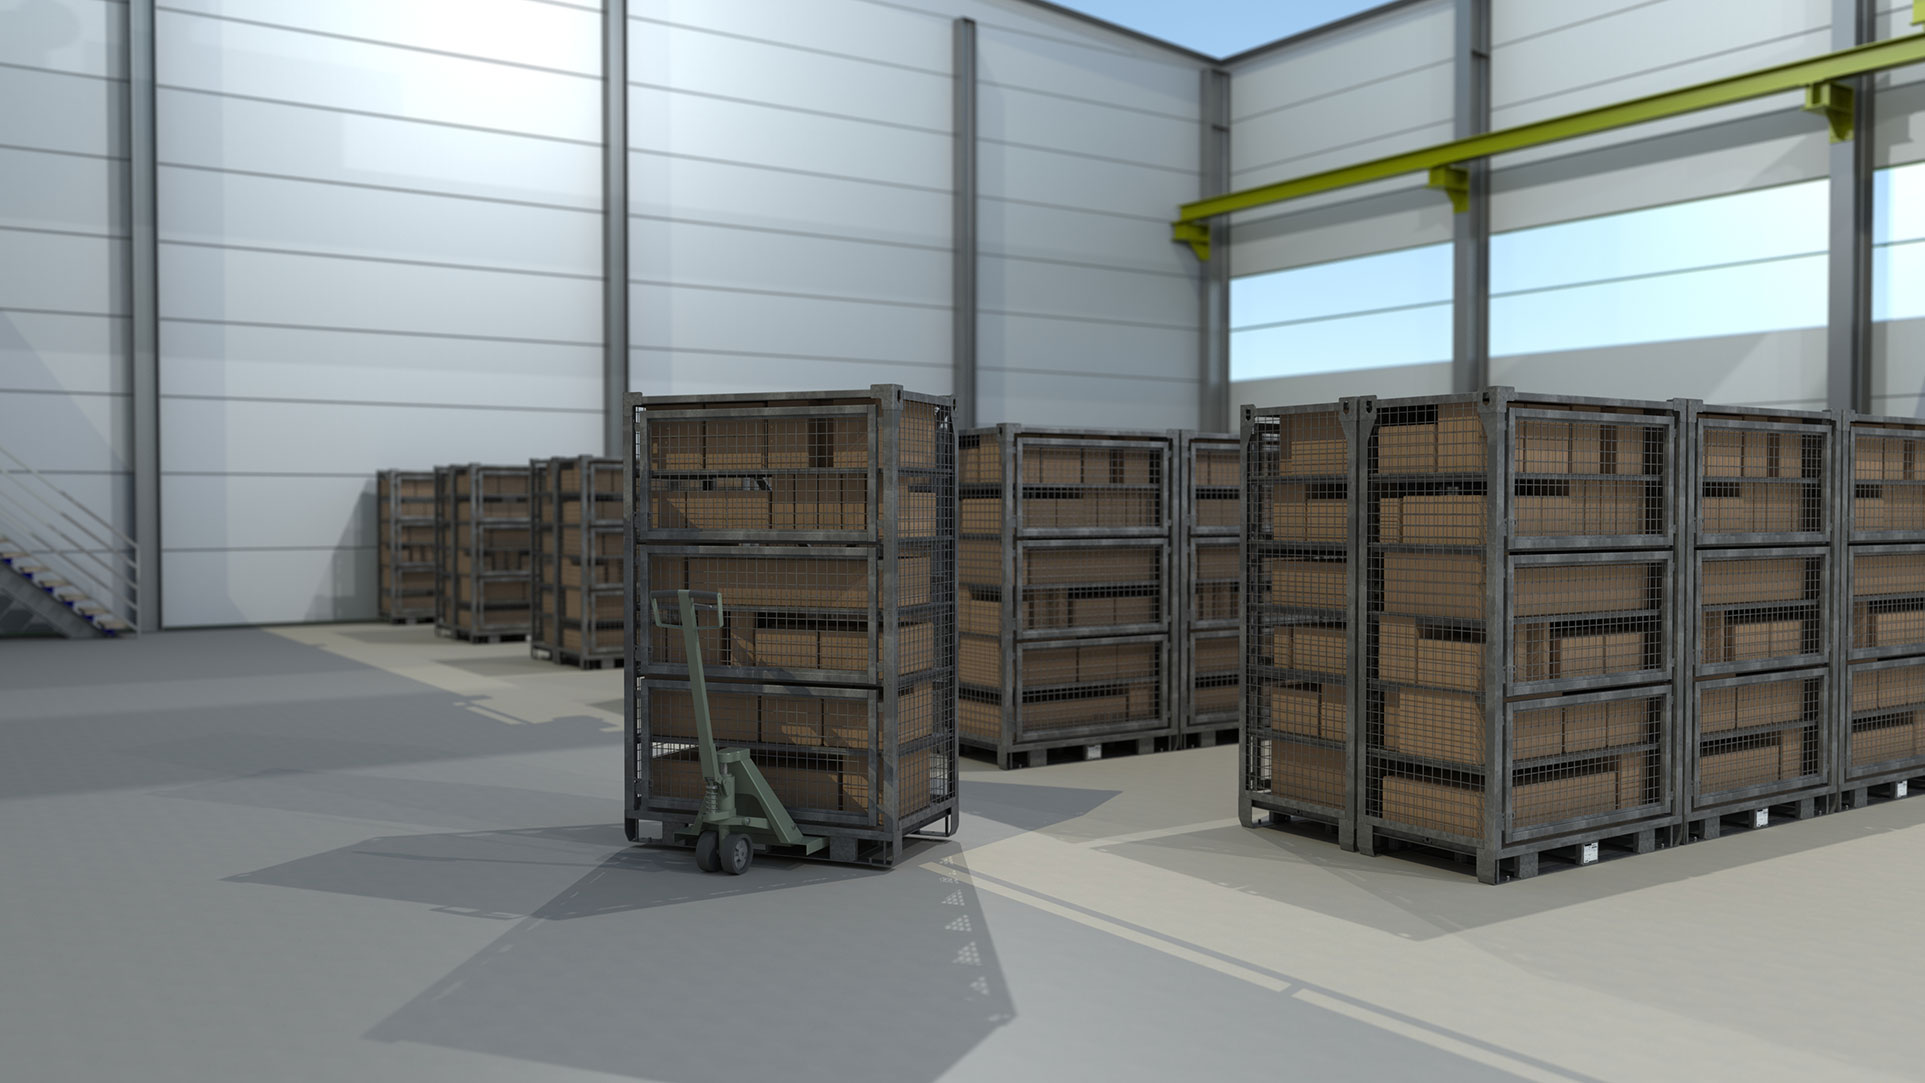 Deployment Lockers Sorted into Aisles in Warehouse